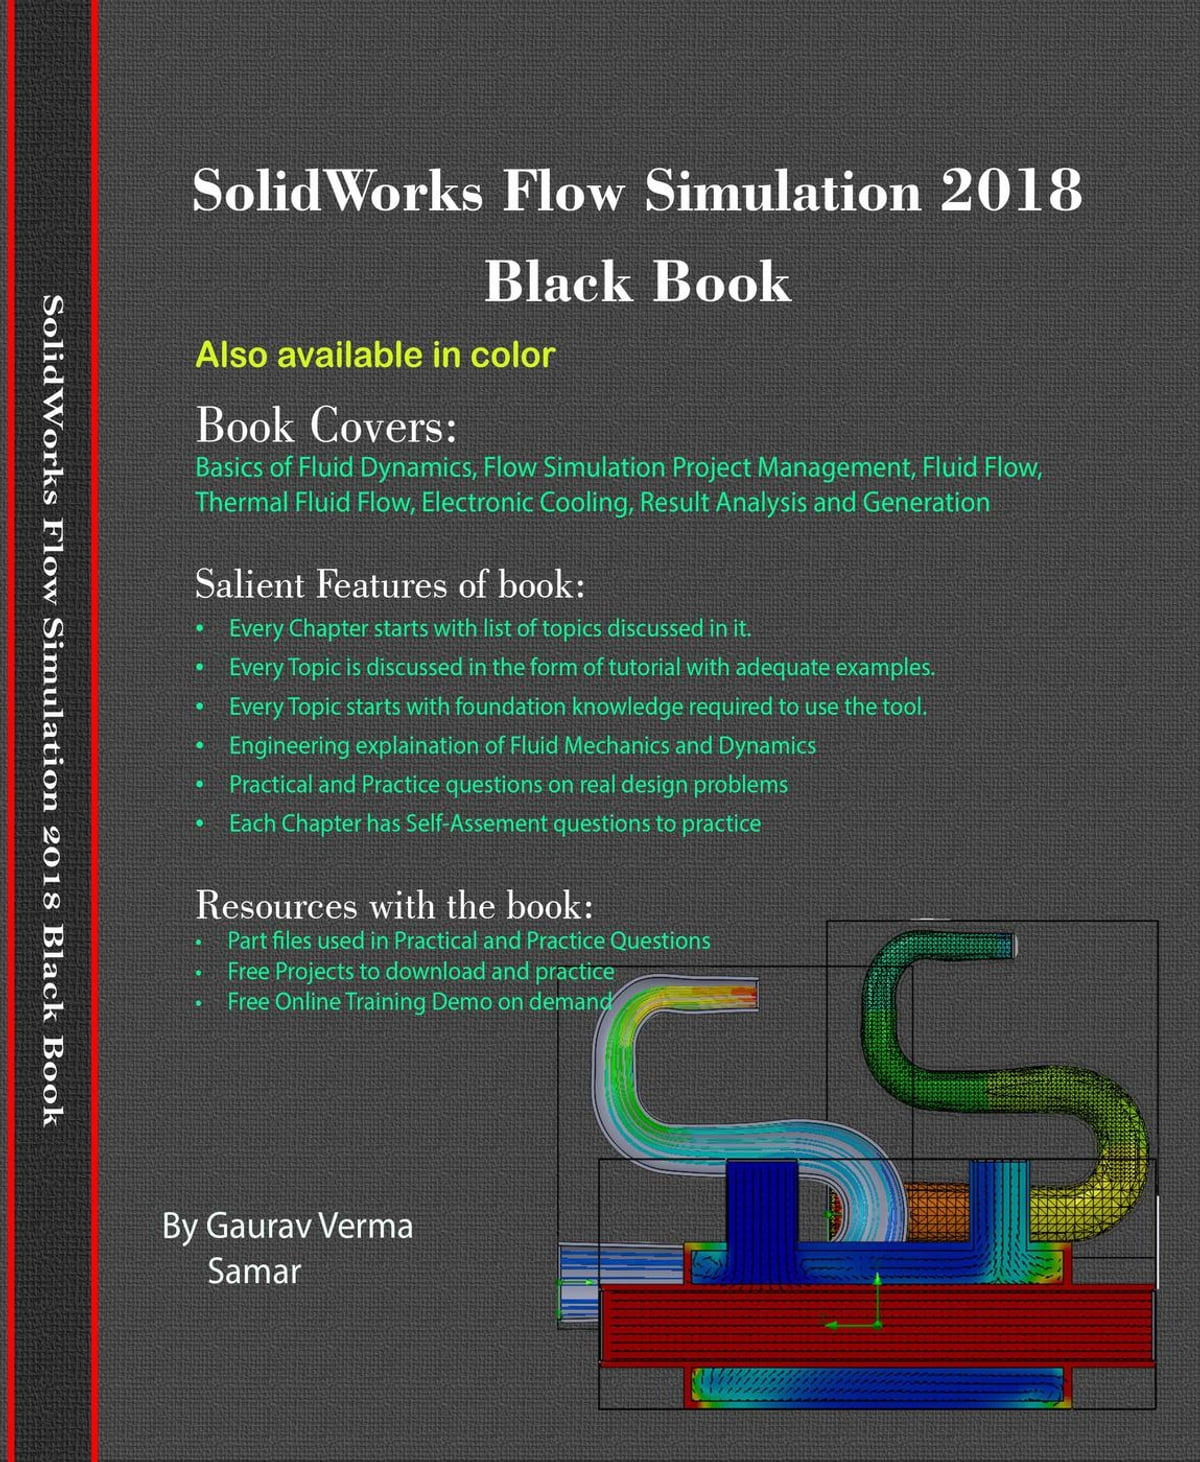 How to download solidworks for free 2018 | SolidWorks 2018